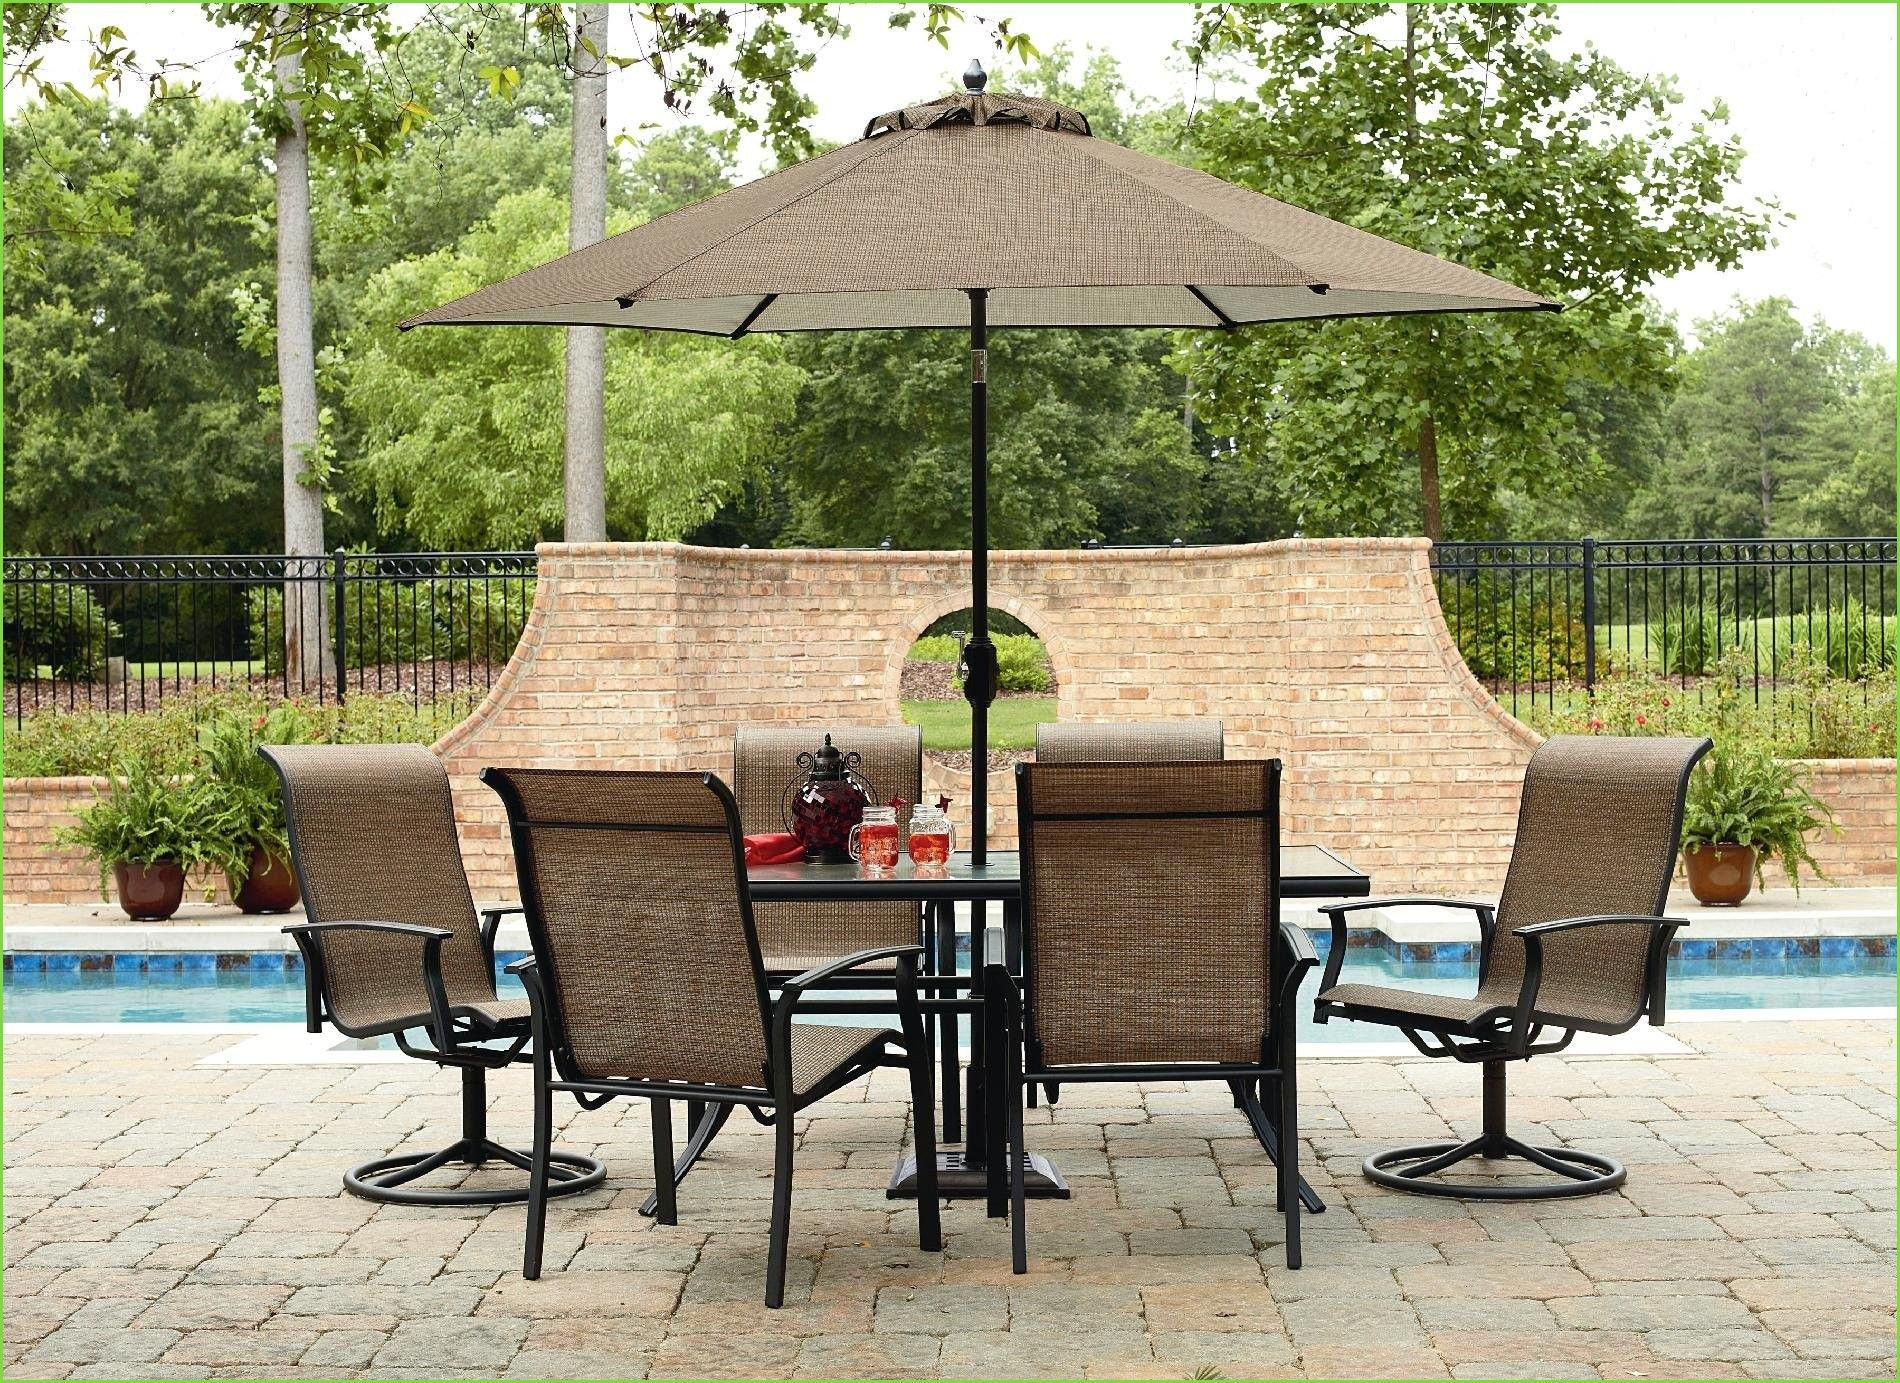 Garden Oasis Patio Furniture Replacement Parts Gallery And Patio Furniture Dining Set Outdoor Dining Table Setting Patio Set